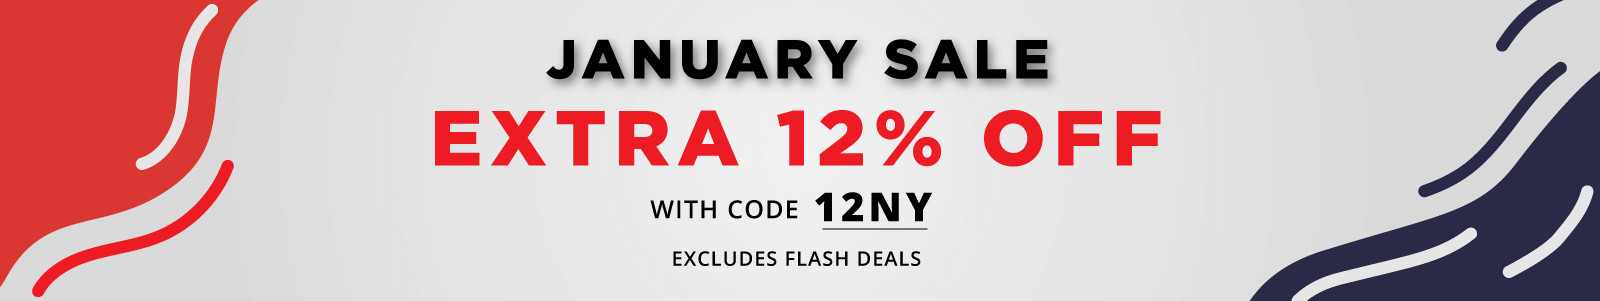 January sale, Extra 12 percent off with code 12NY, excludes flash deals